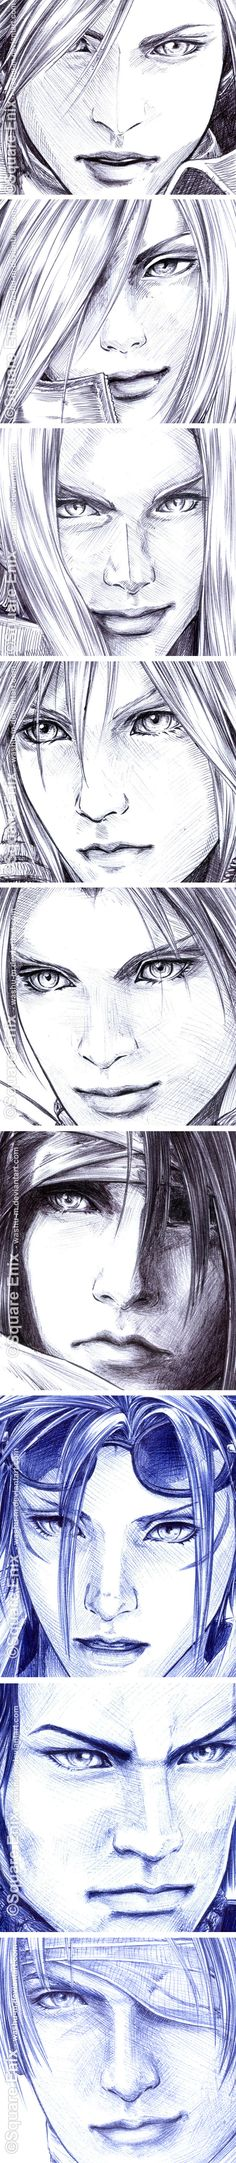 FFVII - Faces Details in Pen by Washu-M on DeviantArt